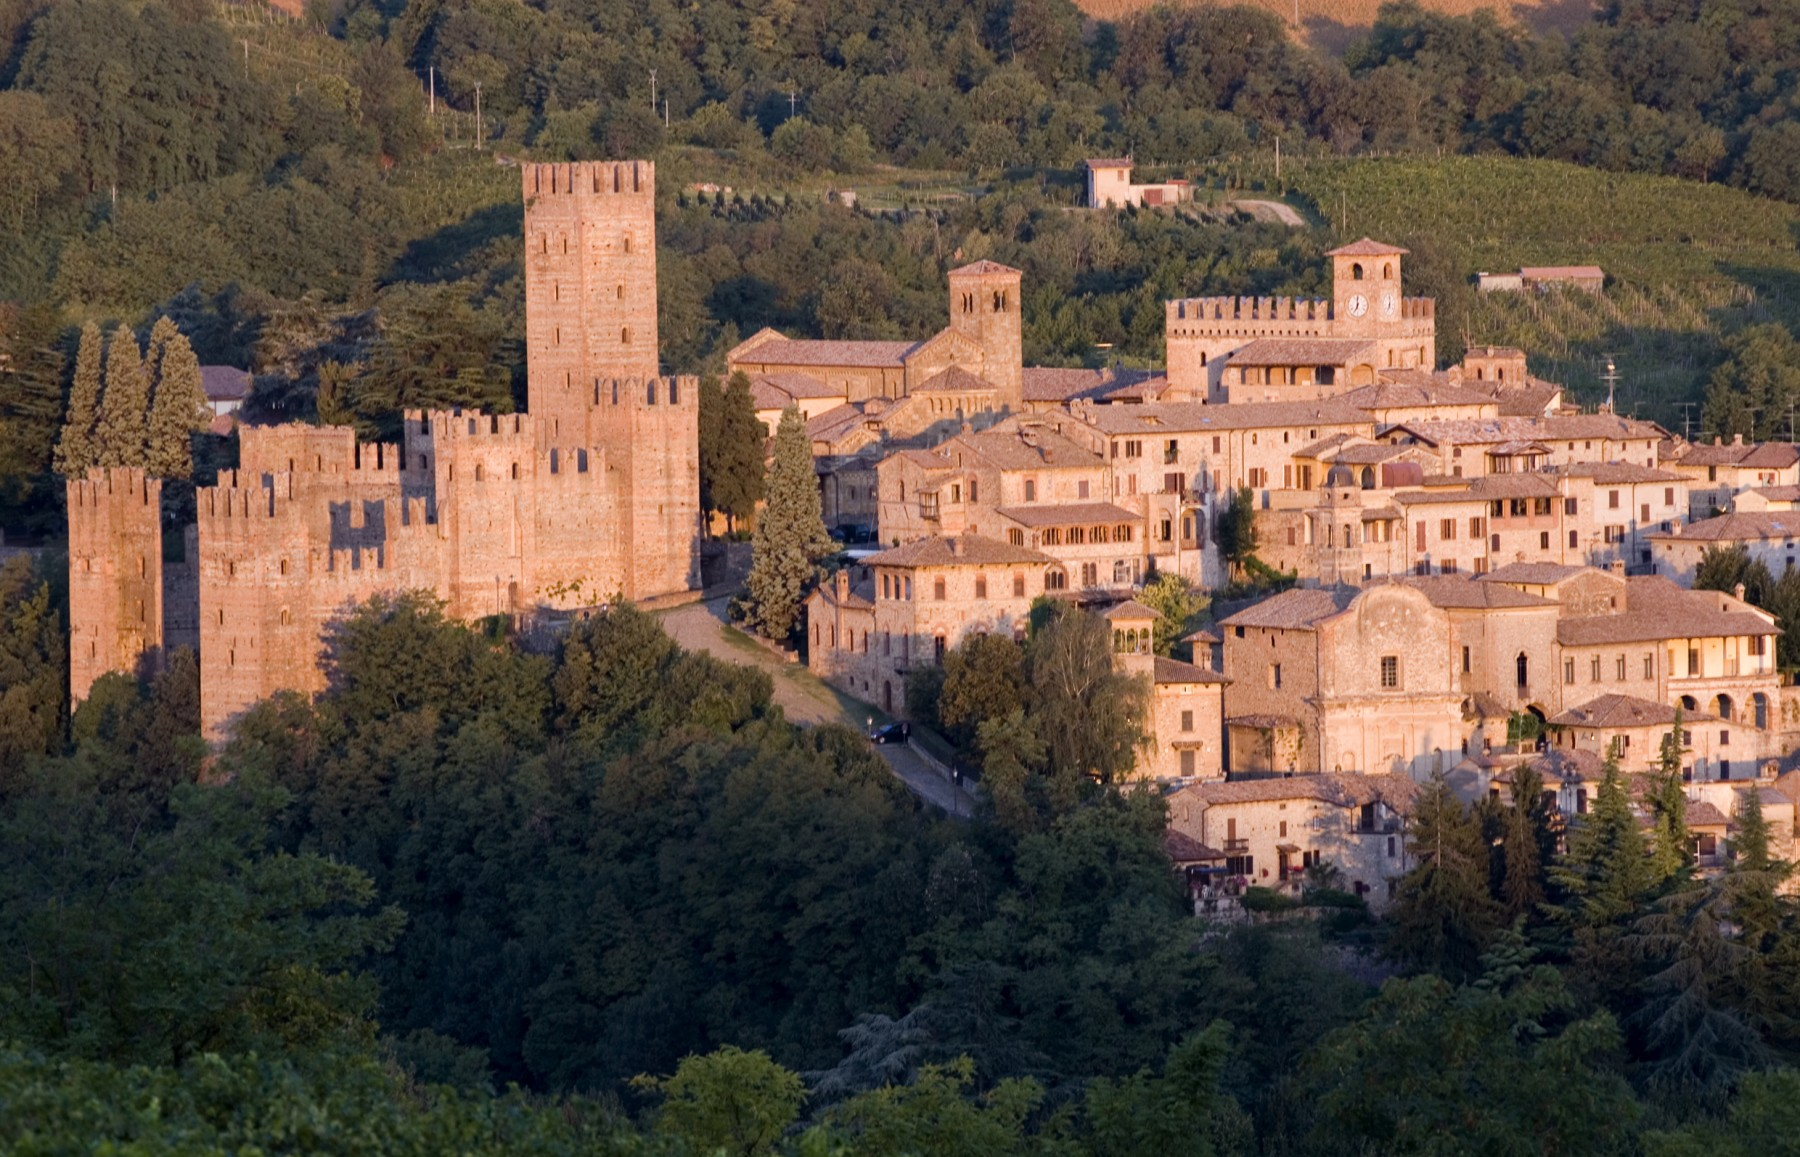 Castell'Arquato: the Middle Ages amid the vineyards